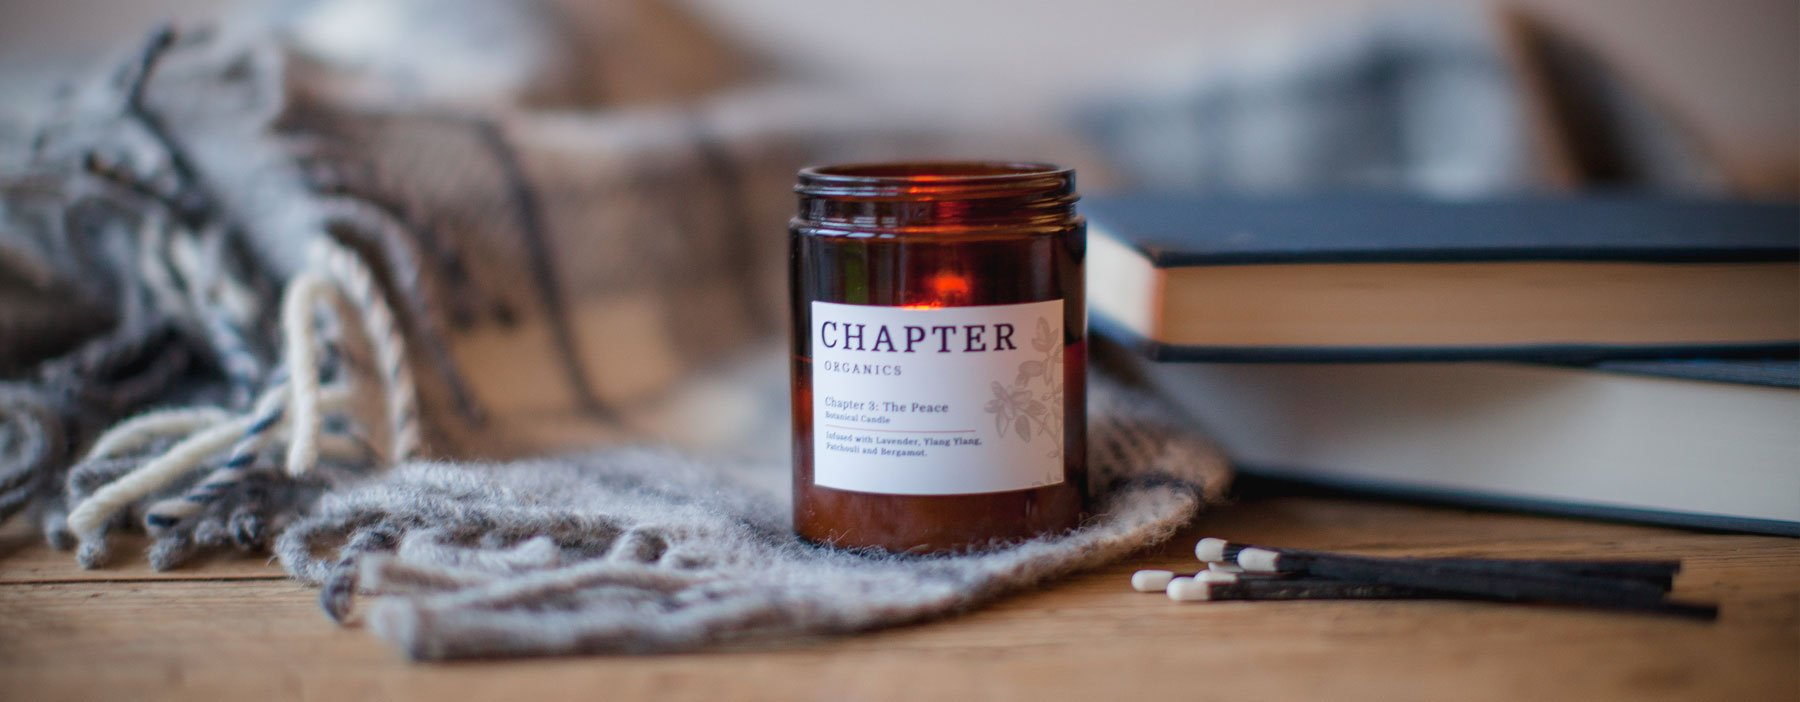 Chapter Organics Candle — The Tetley Shop